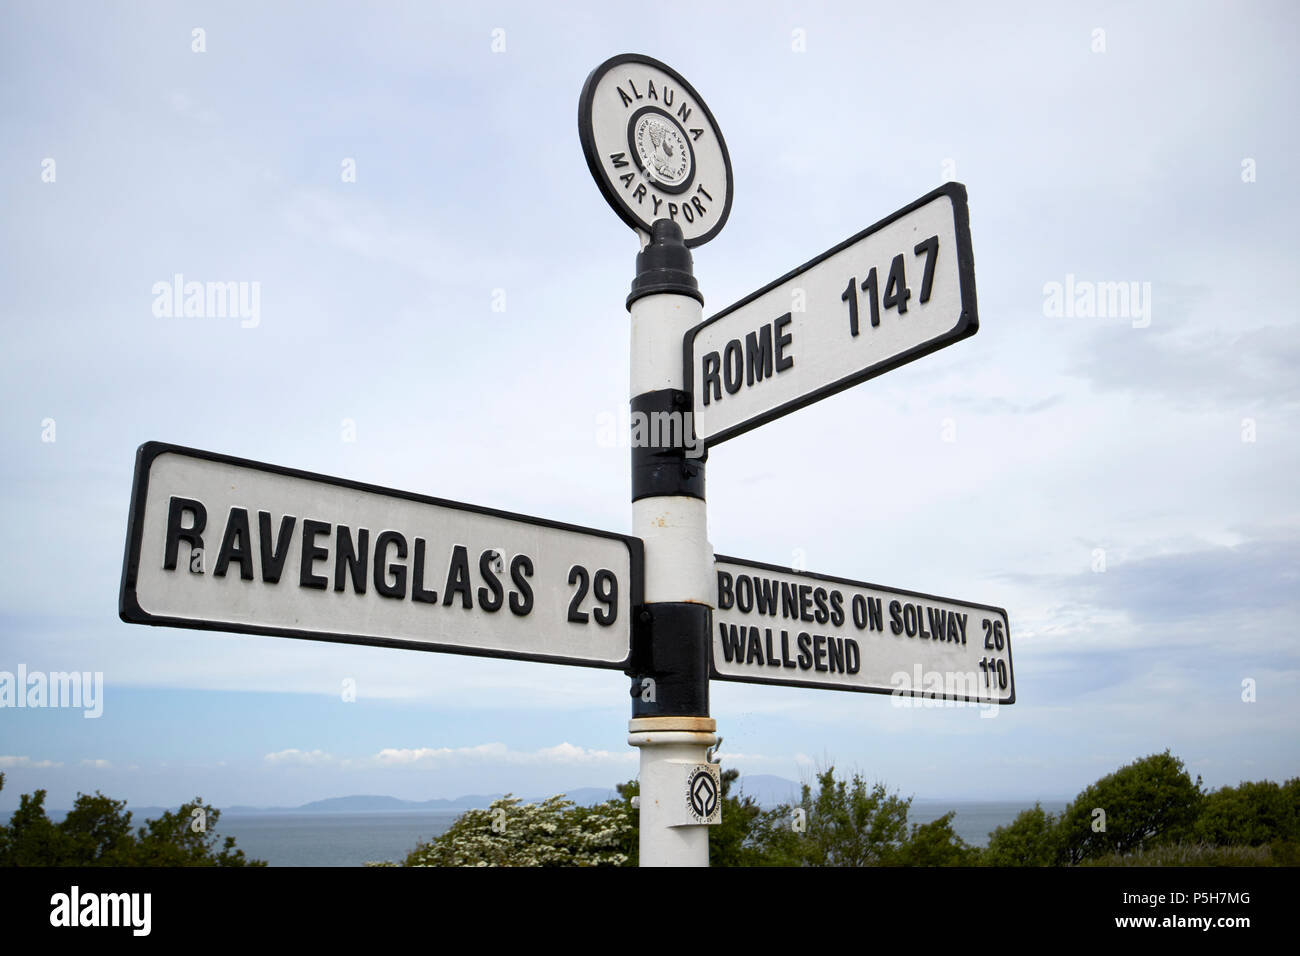 distance marker at the old roman fort of alauna in Maryport Cumbria England UK with distances to hadrians wall ends and rome - Stock Image